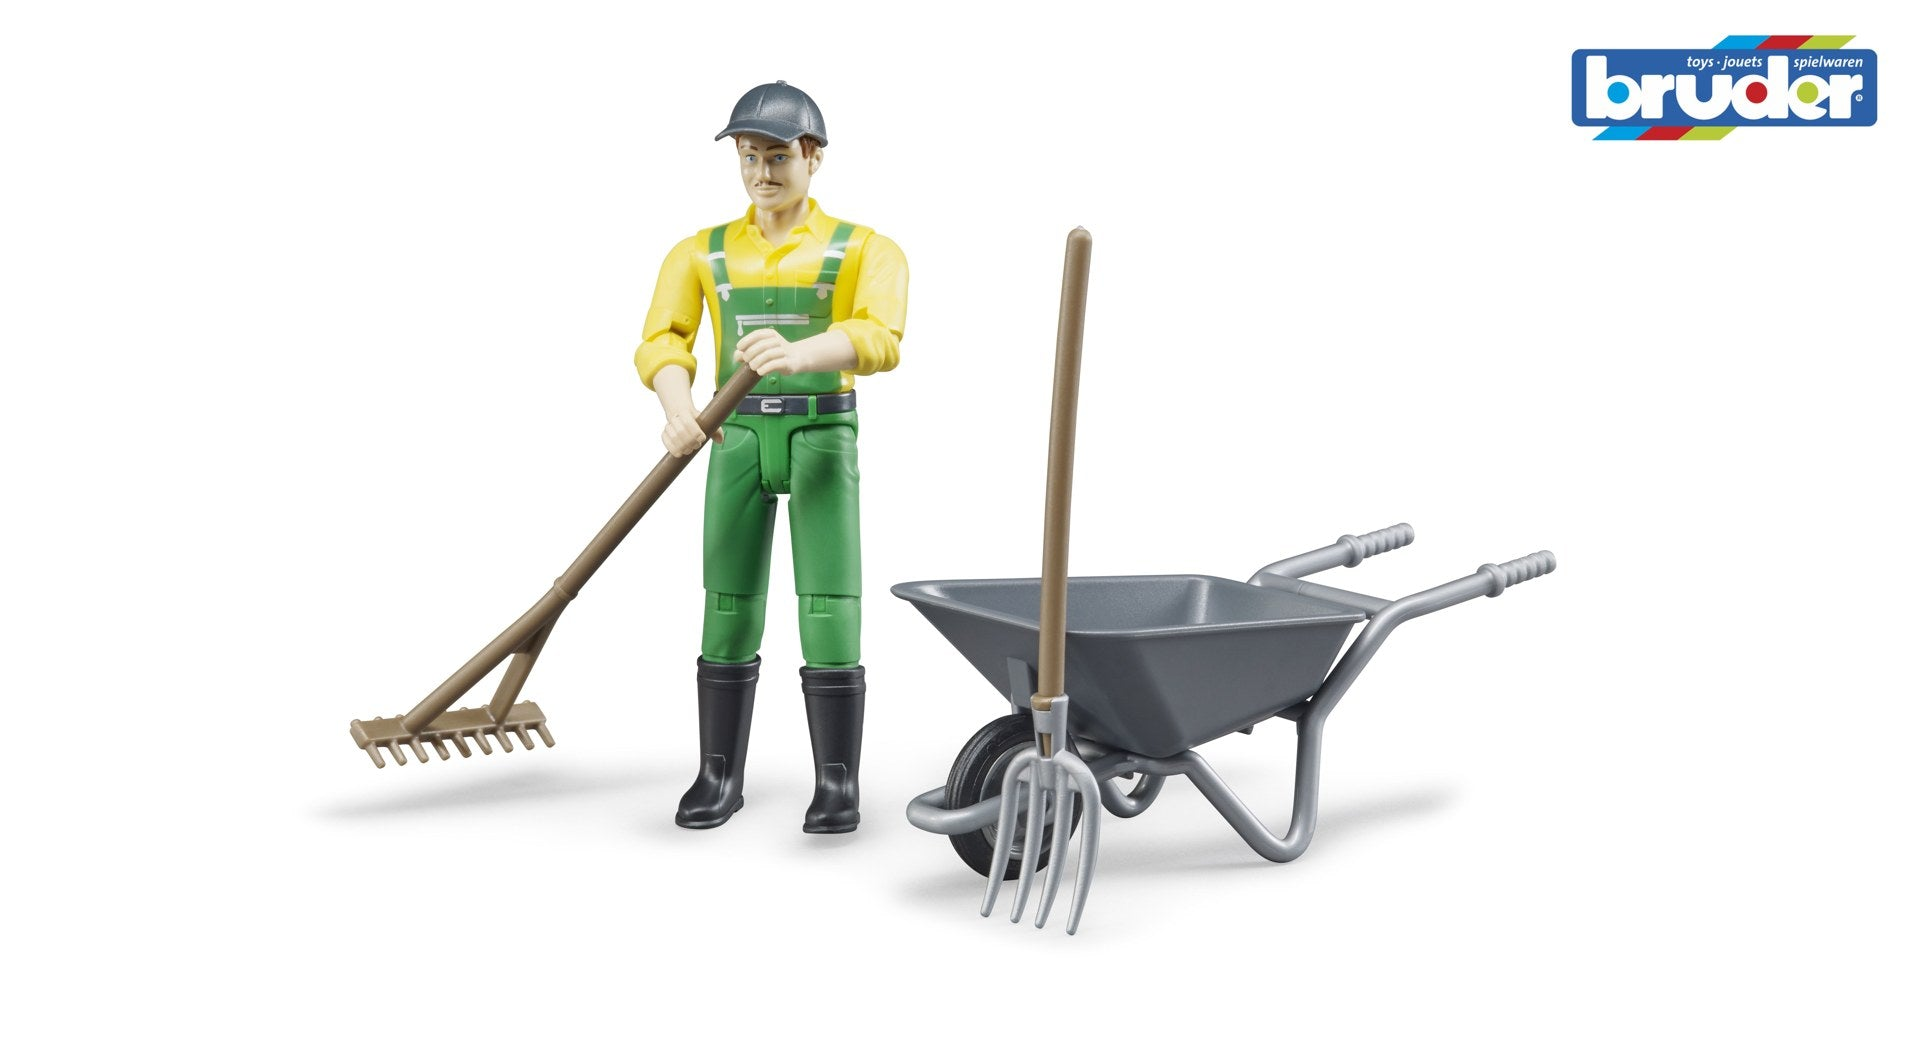 Bruder - Bworld Figure - Farmer Set (62610)